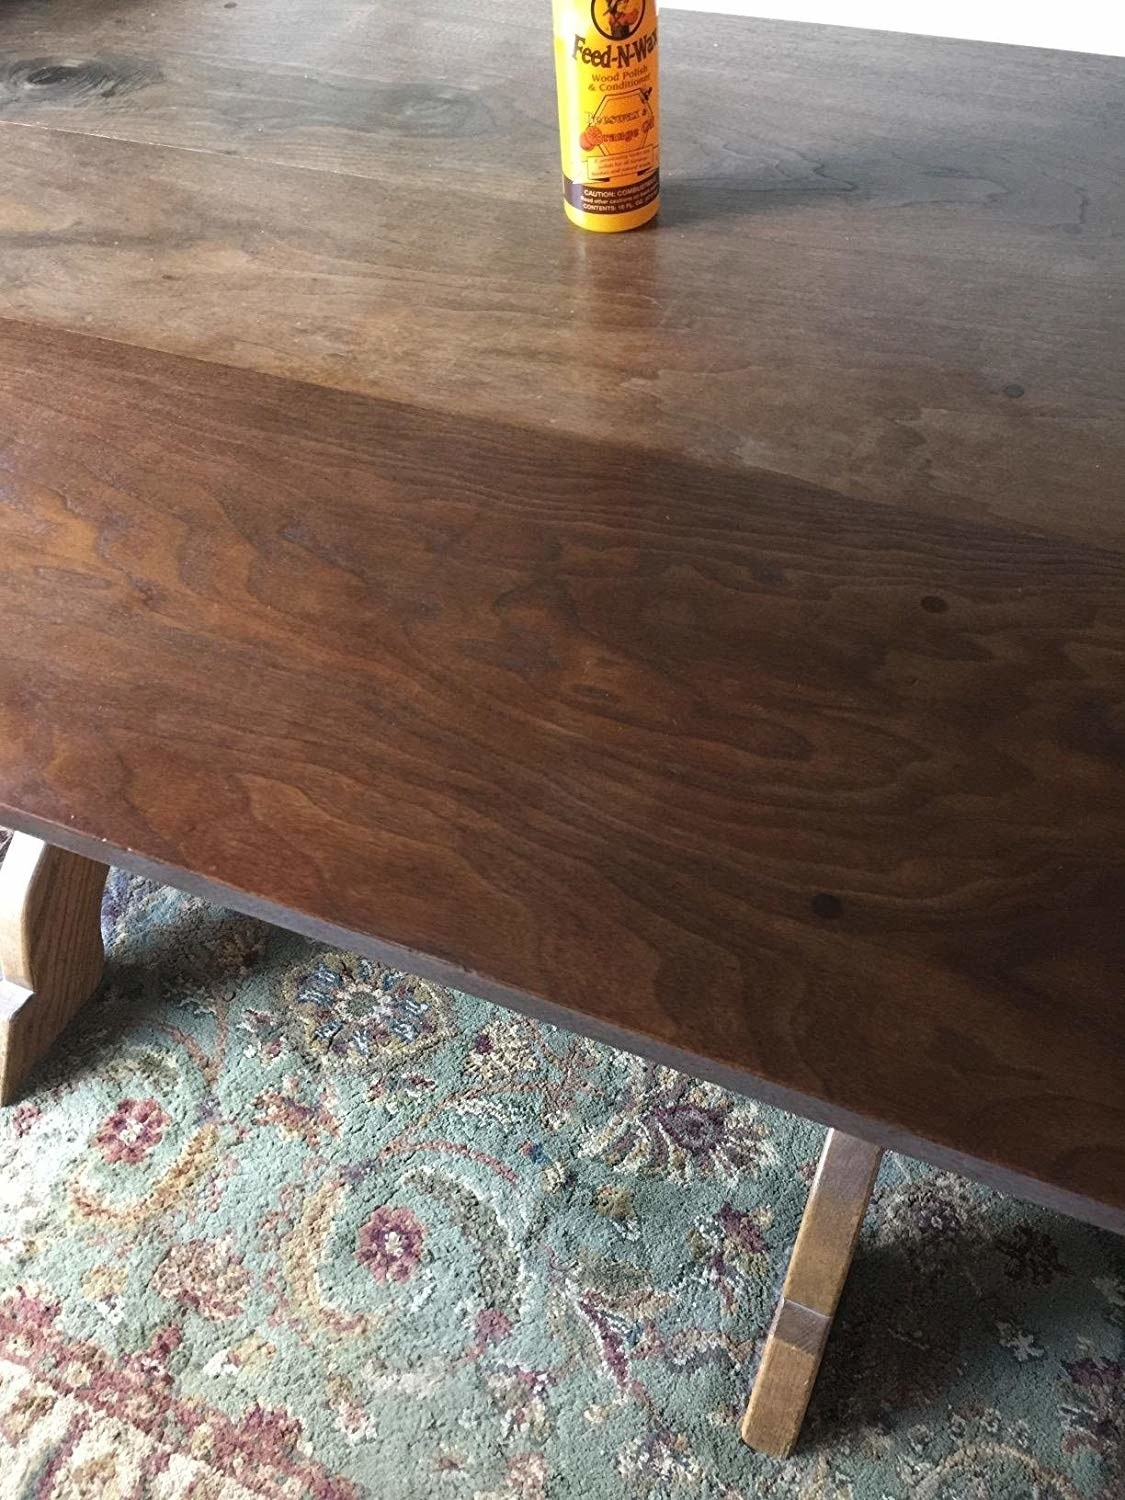 A before and after showing a wood table looks good as new after using the polish